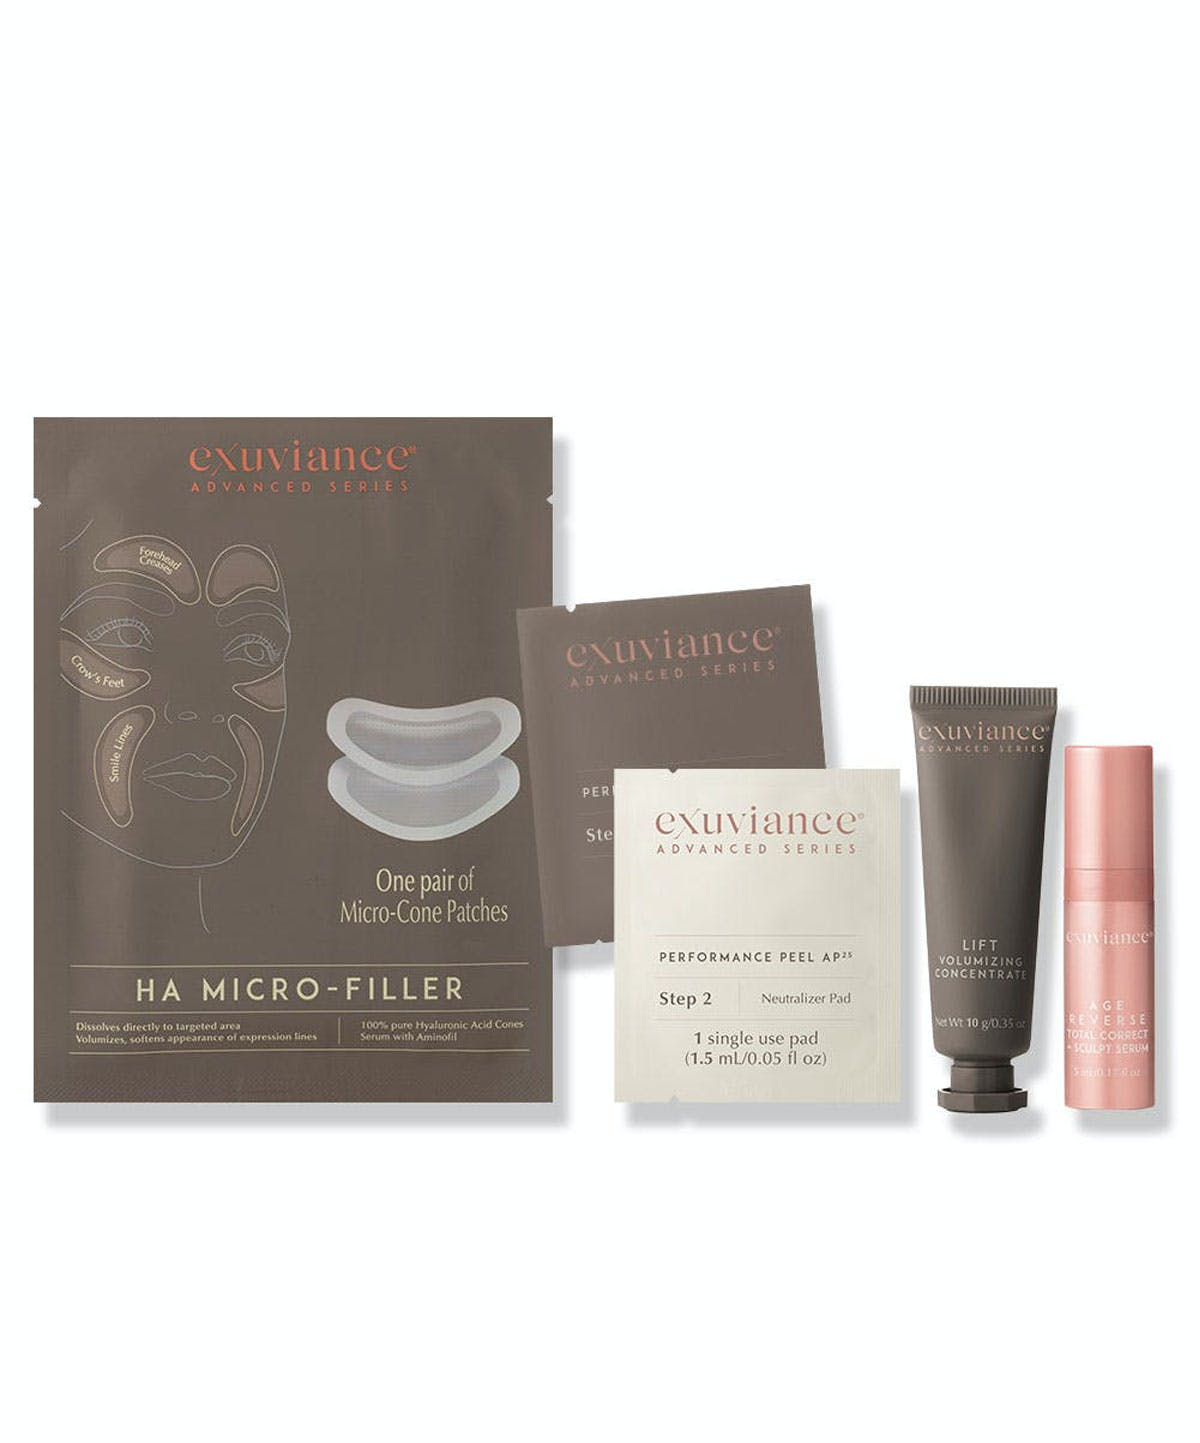 The Expressions Collection Kit